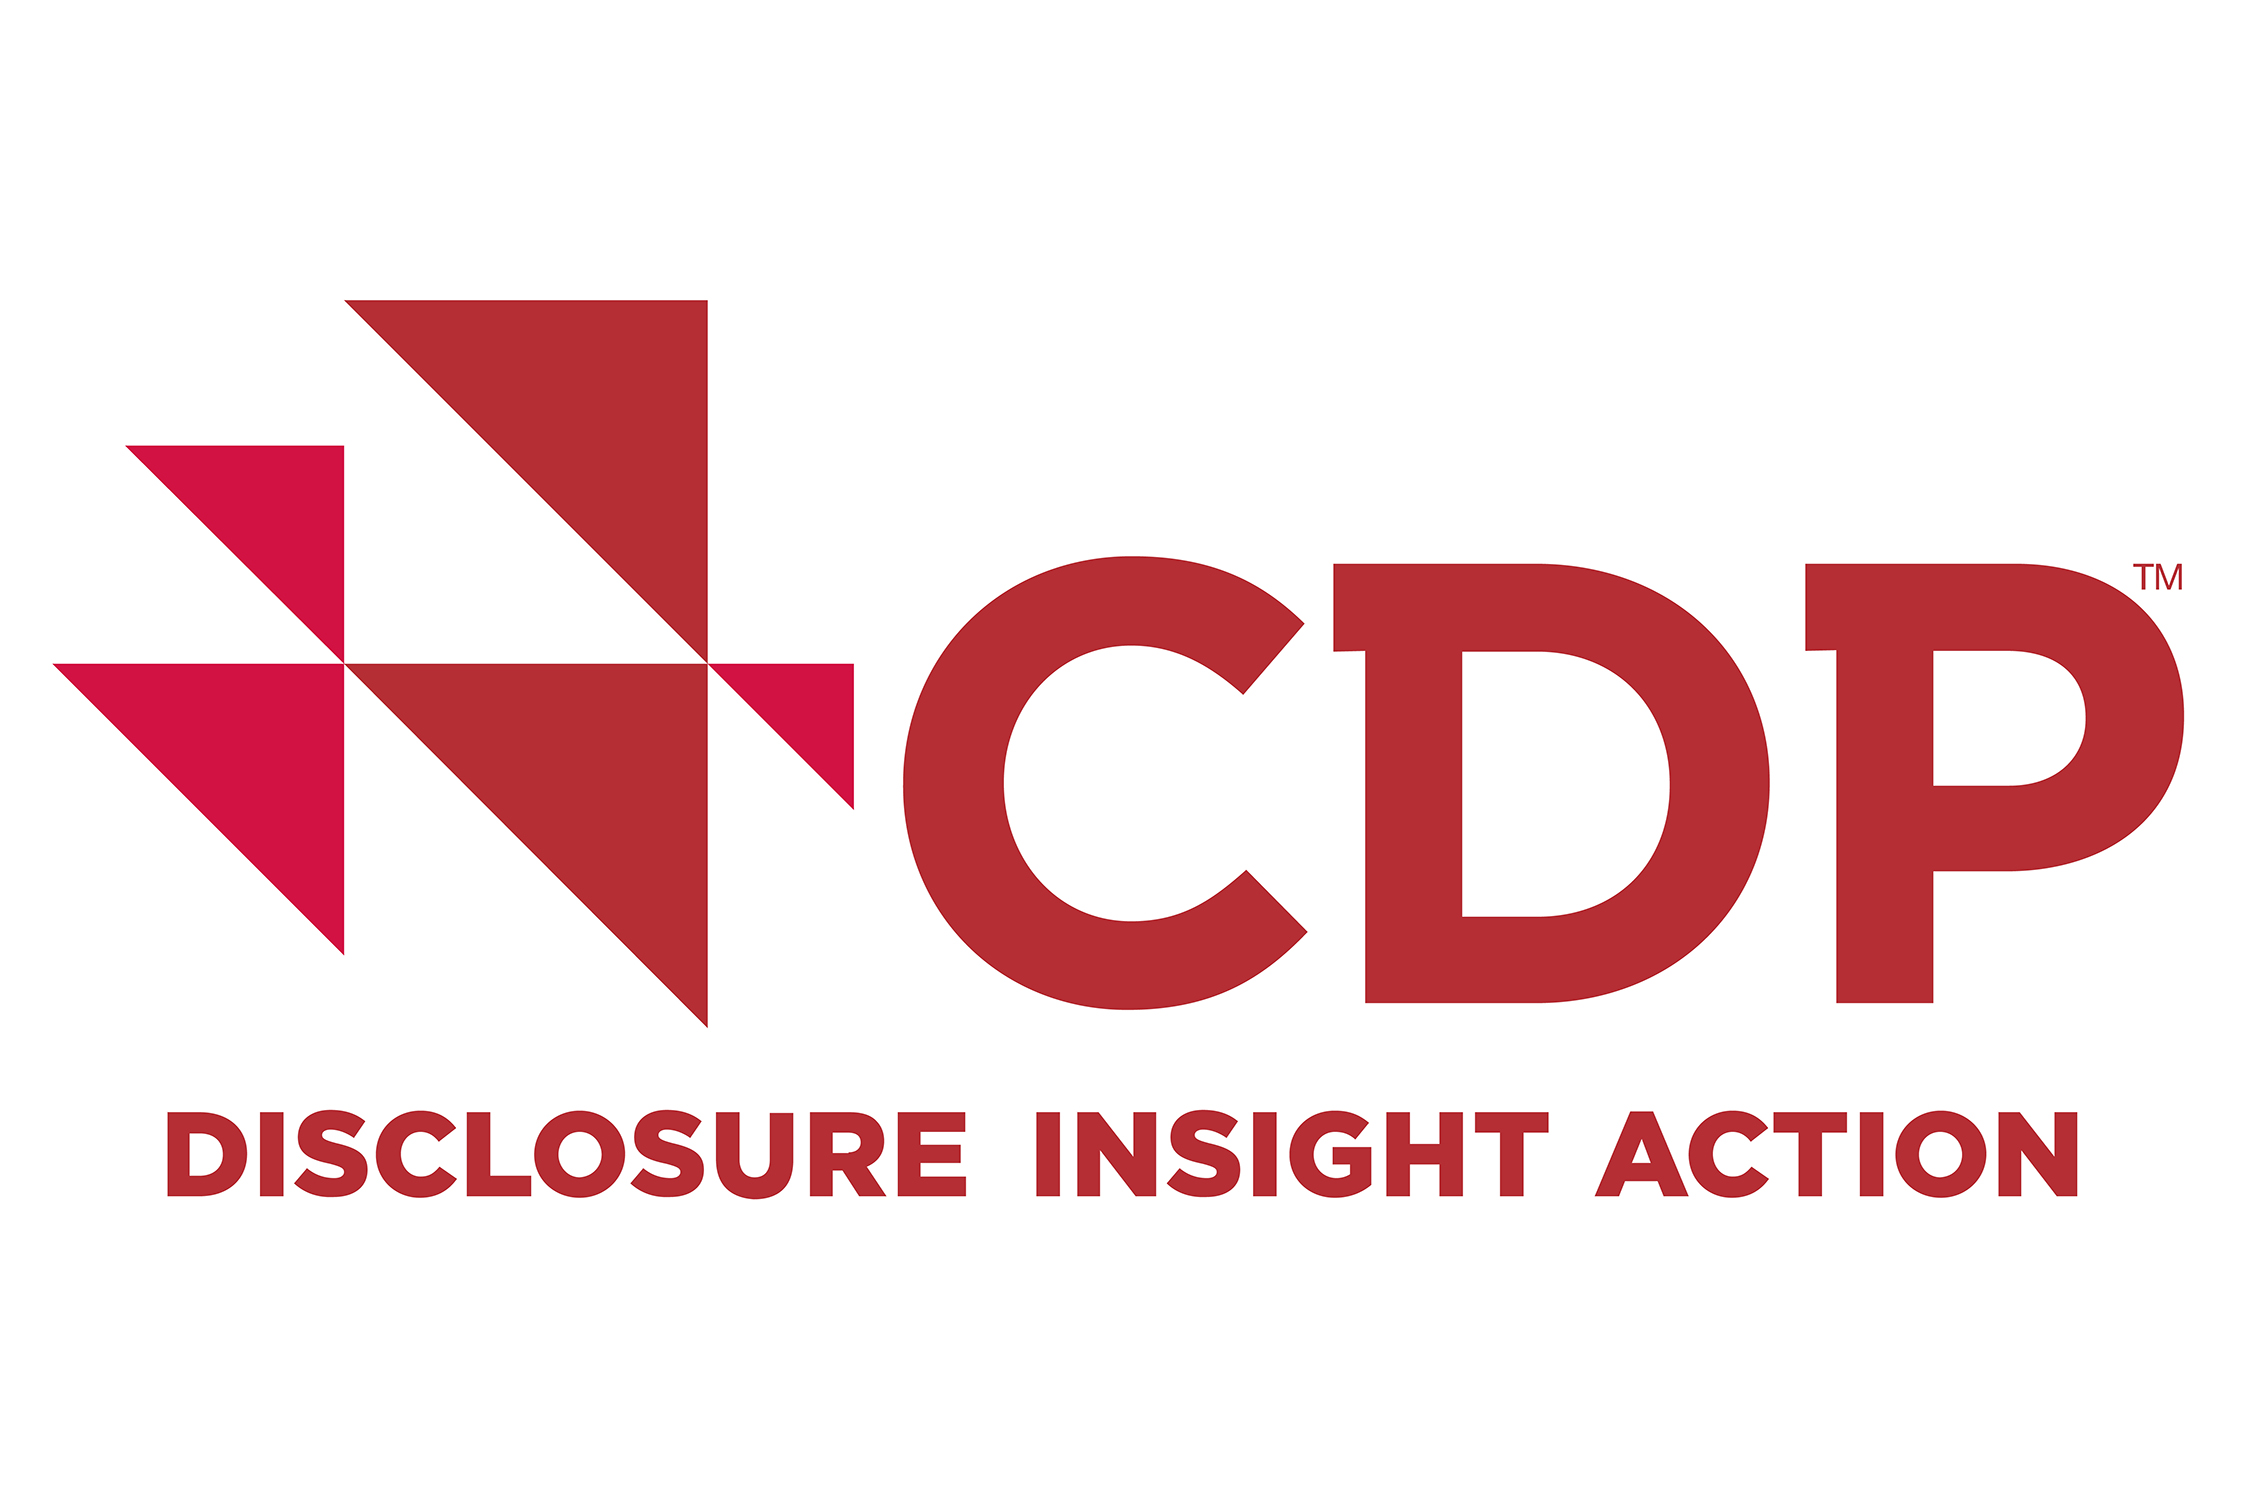 CDP is a not-for-profit charity running the global disclosure system for investors, companies, cities, states and regions to manage their environmental impacts